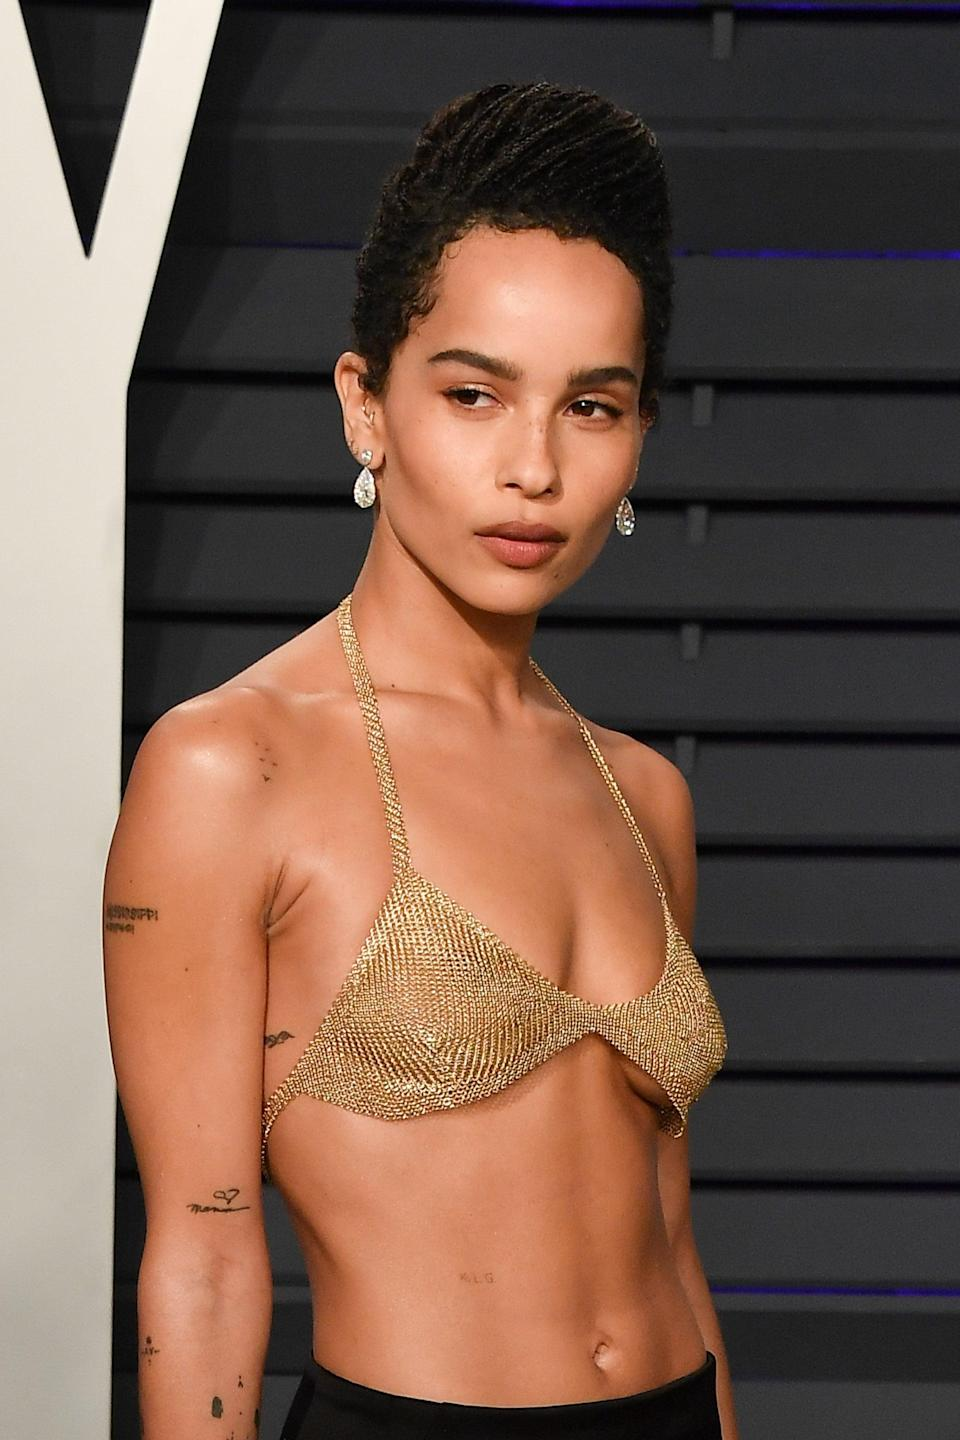 <p>Though it's hidden in many photos, a small script tattoo can be seen on Kravitz's ribs. She has not revealed its meaning.</p>